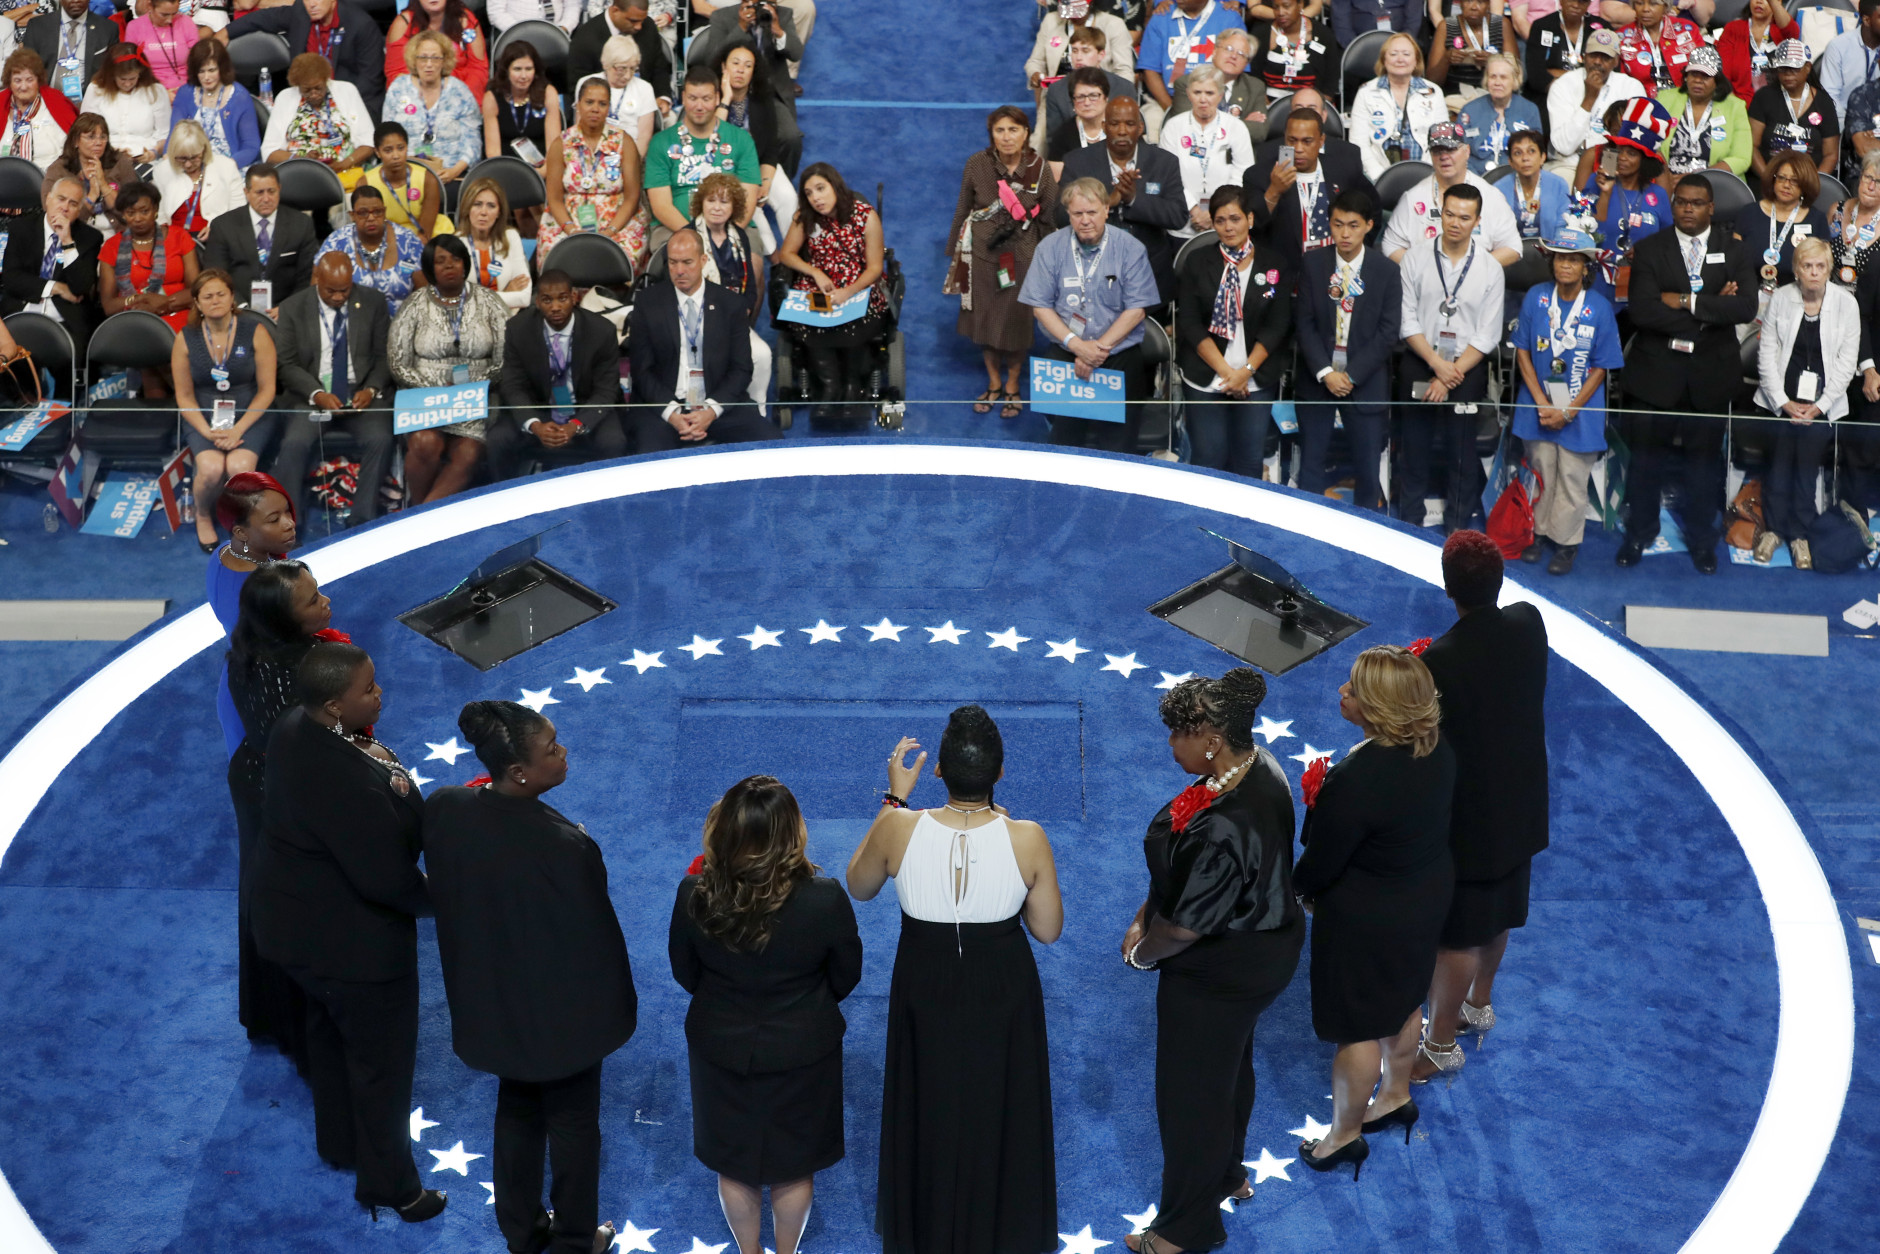 Sybrina Fulton, Geneva Reed-Veal, Lucy McBath, Gwen Carr, Cleopatra Pendleton, Maria Hamilton, Lezley McSpadden and Wanda Johnson from Mothers of the Movement speak during the second day of the Democratic National Convention in Philadelphia , Tuesday, July 26, 2016. (AP Photo/Mary Altaffer)